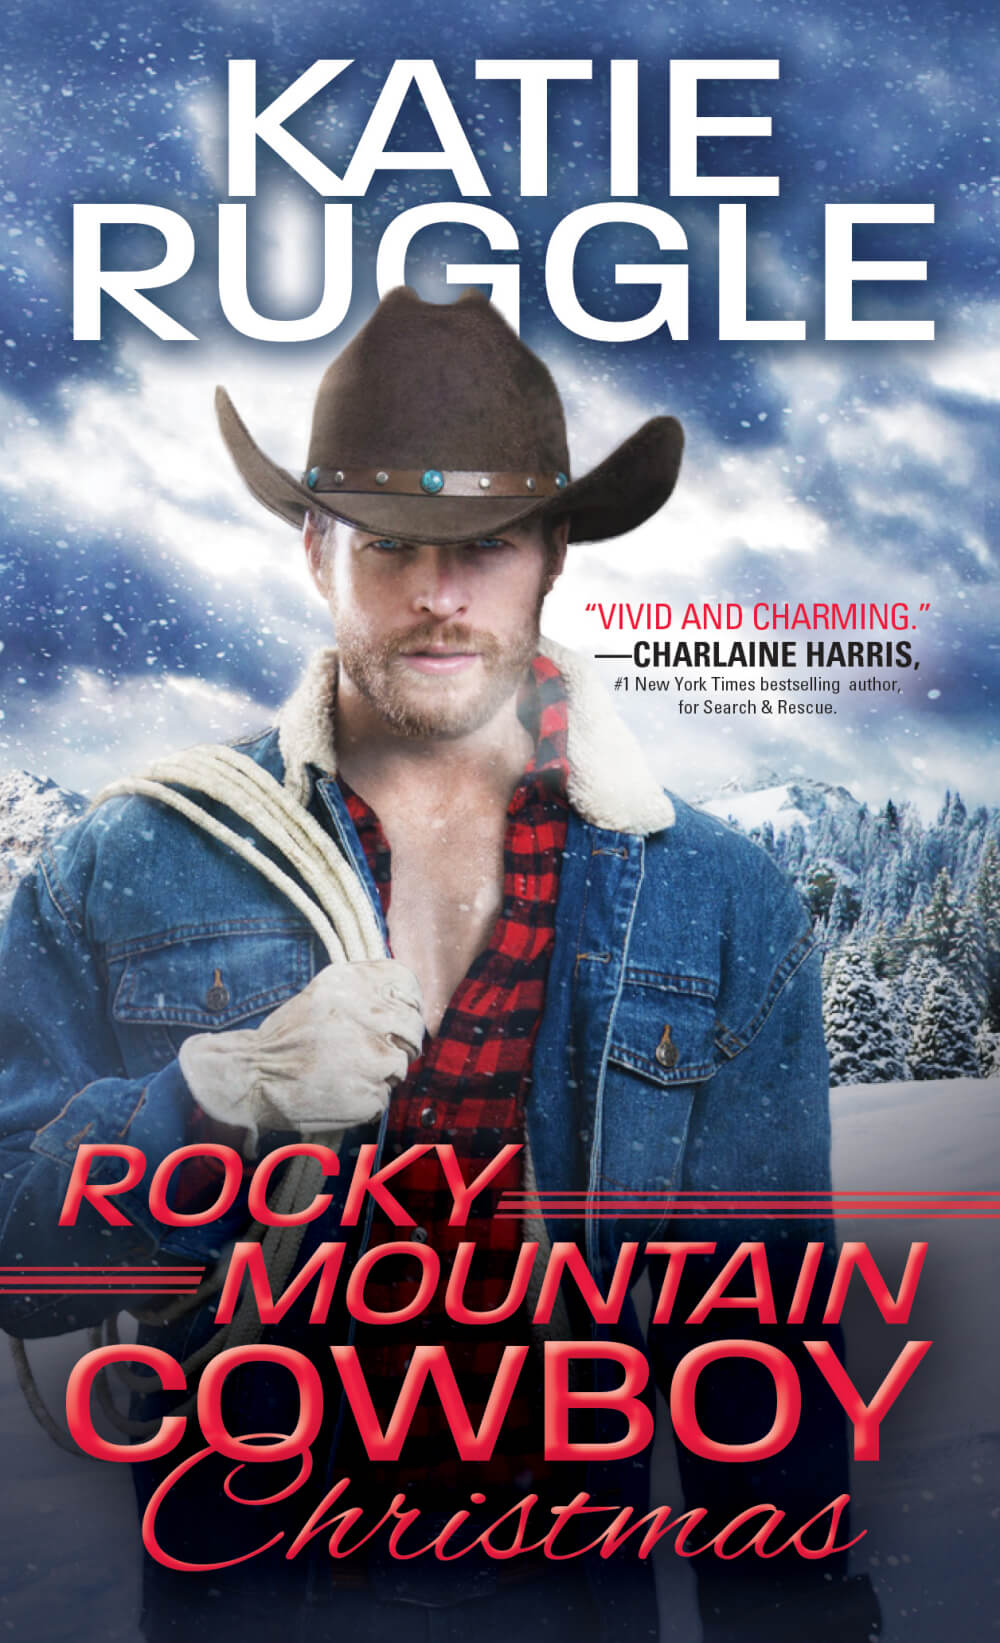 Rocky Mountain Cowboy Christmas by Katie Ruggle